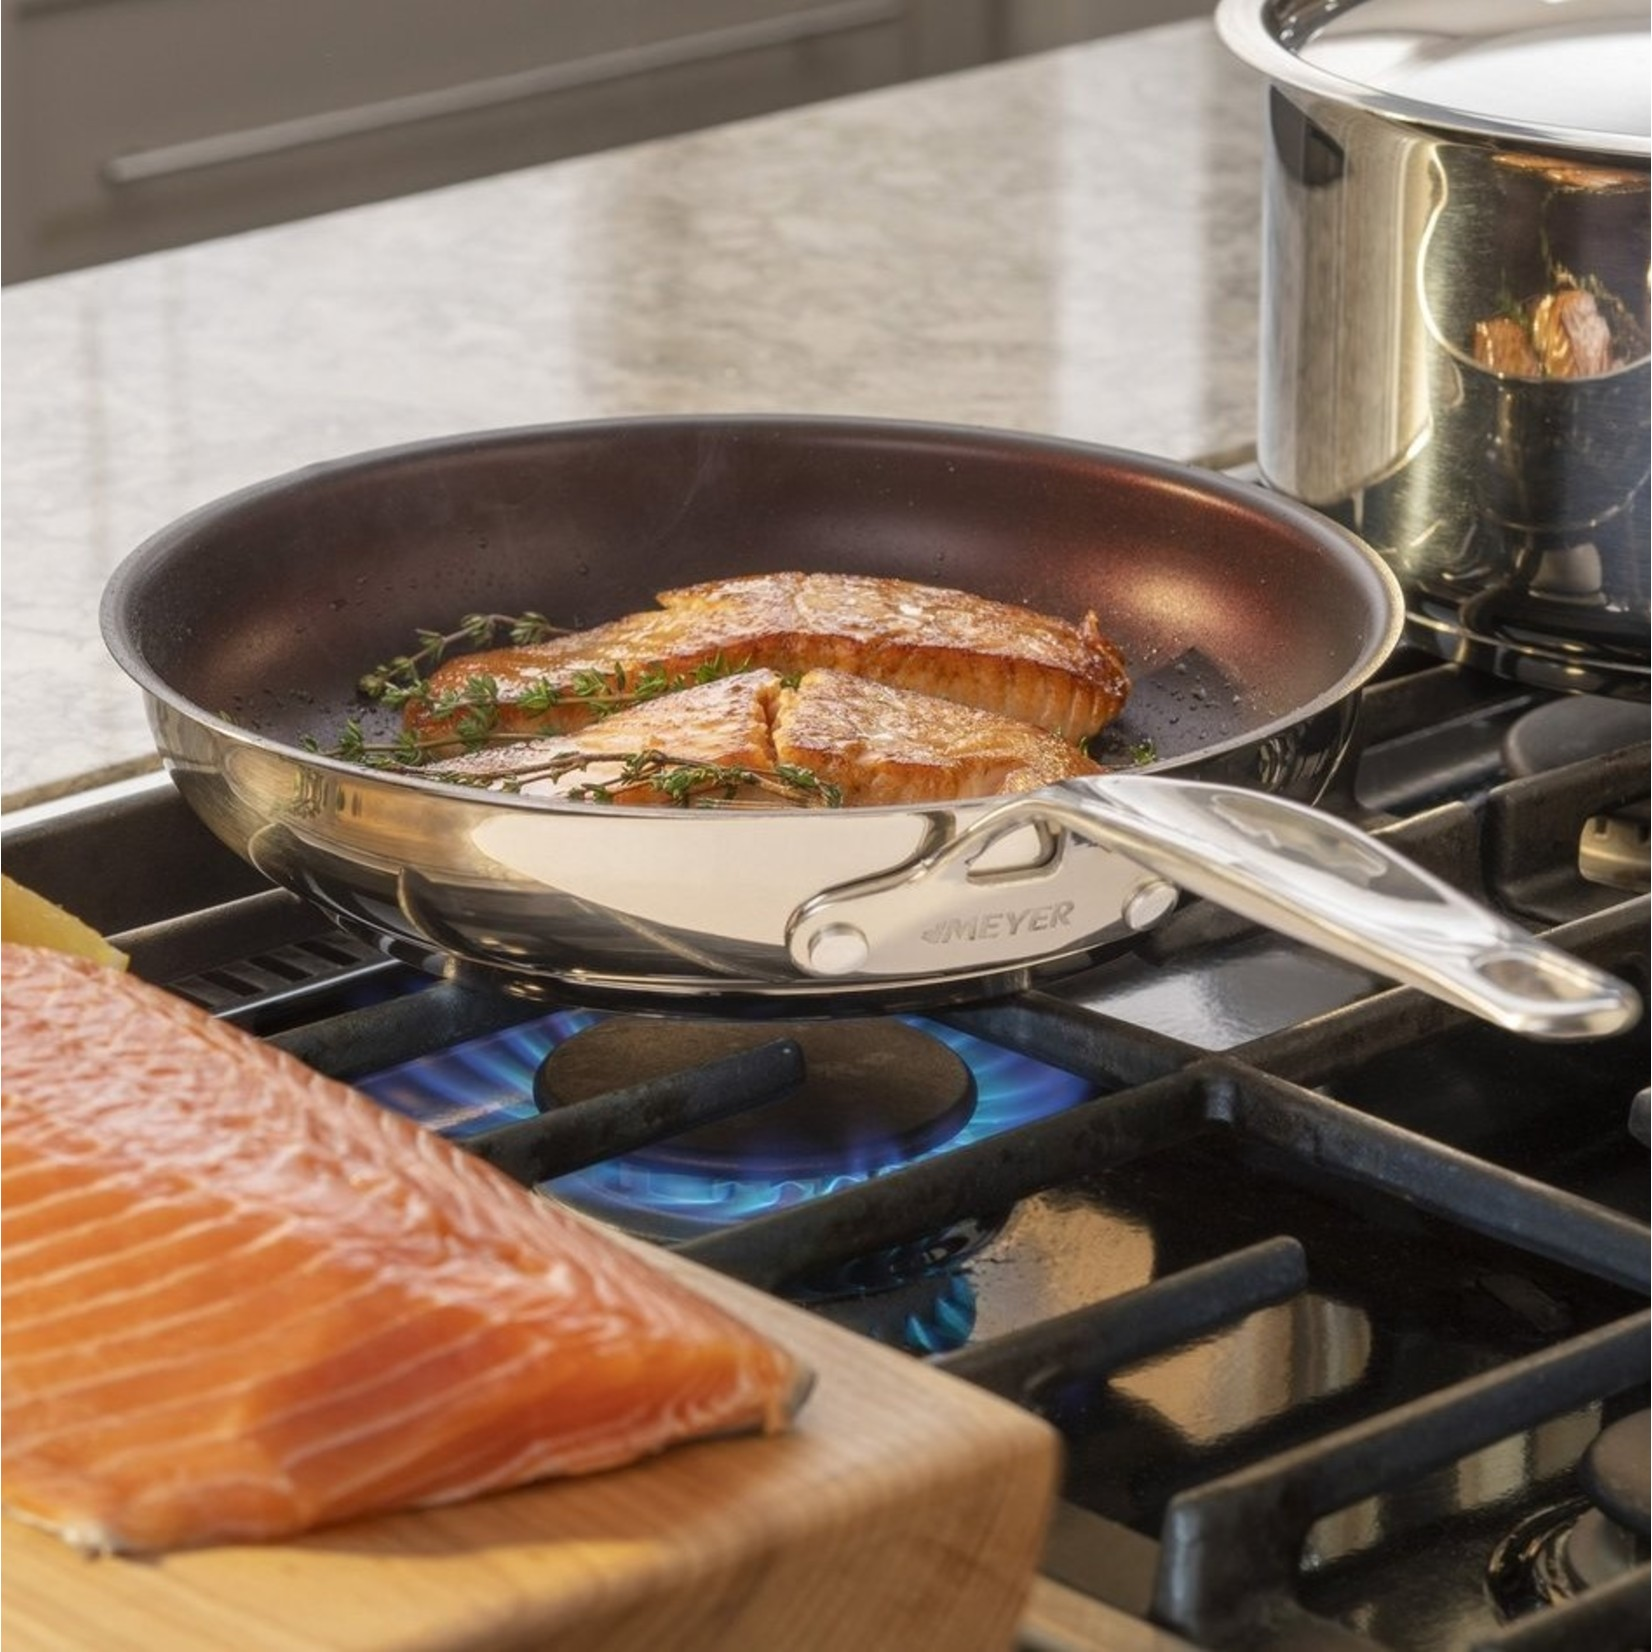 Meyer Meyer Confederation Stainless Steel Non Stick Fry Pan, Skillet